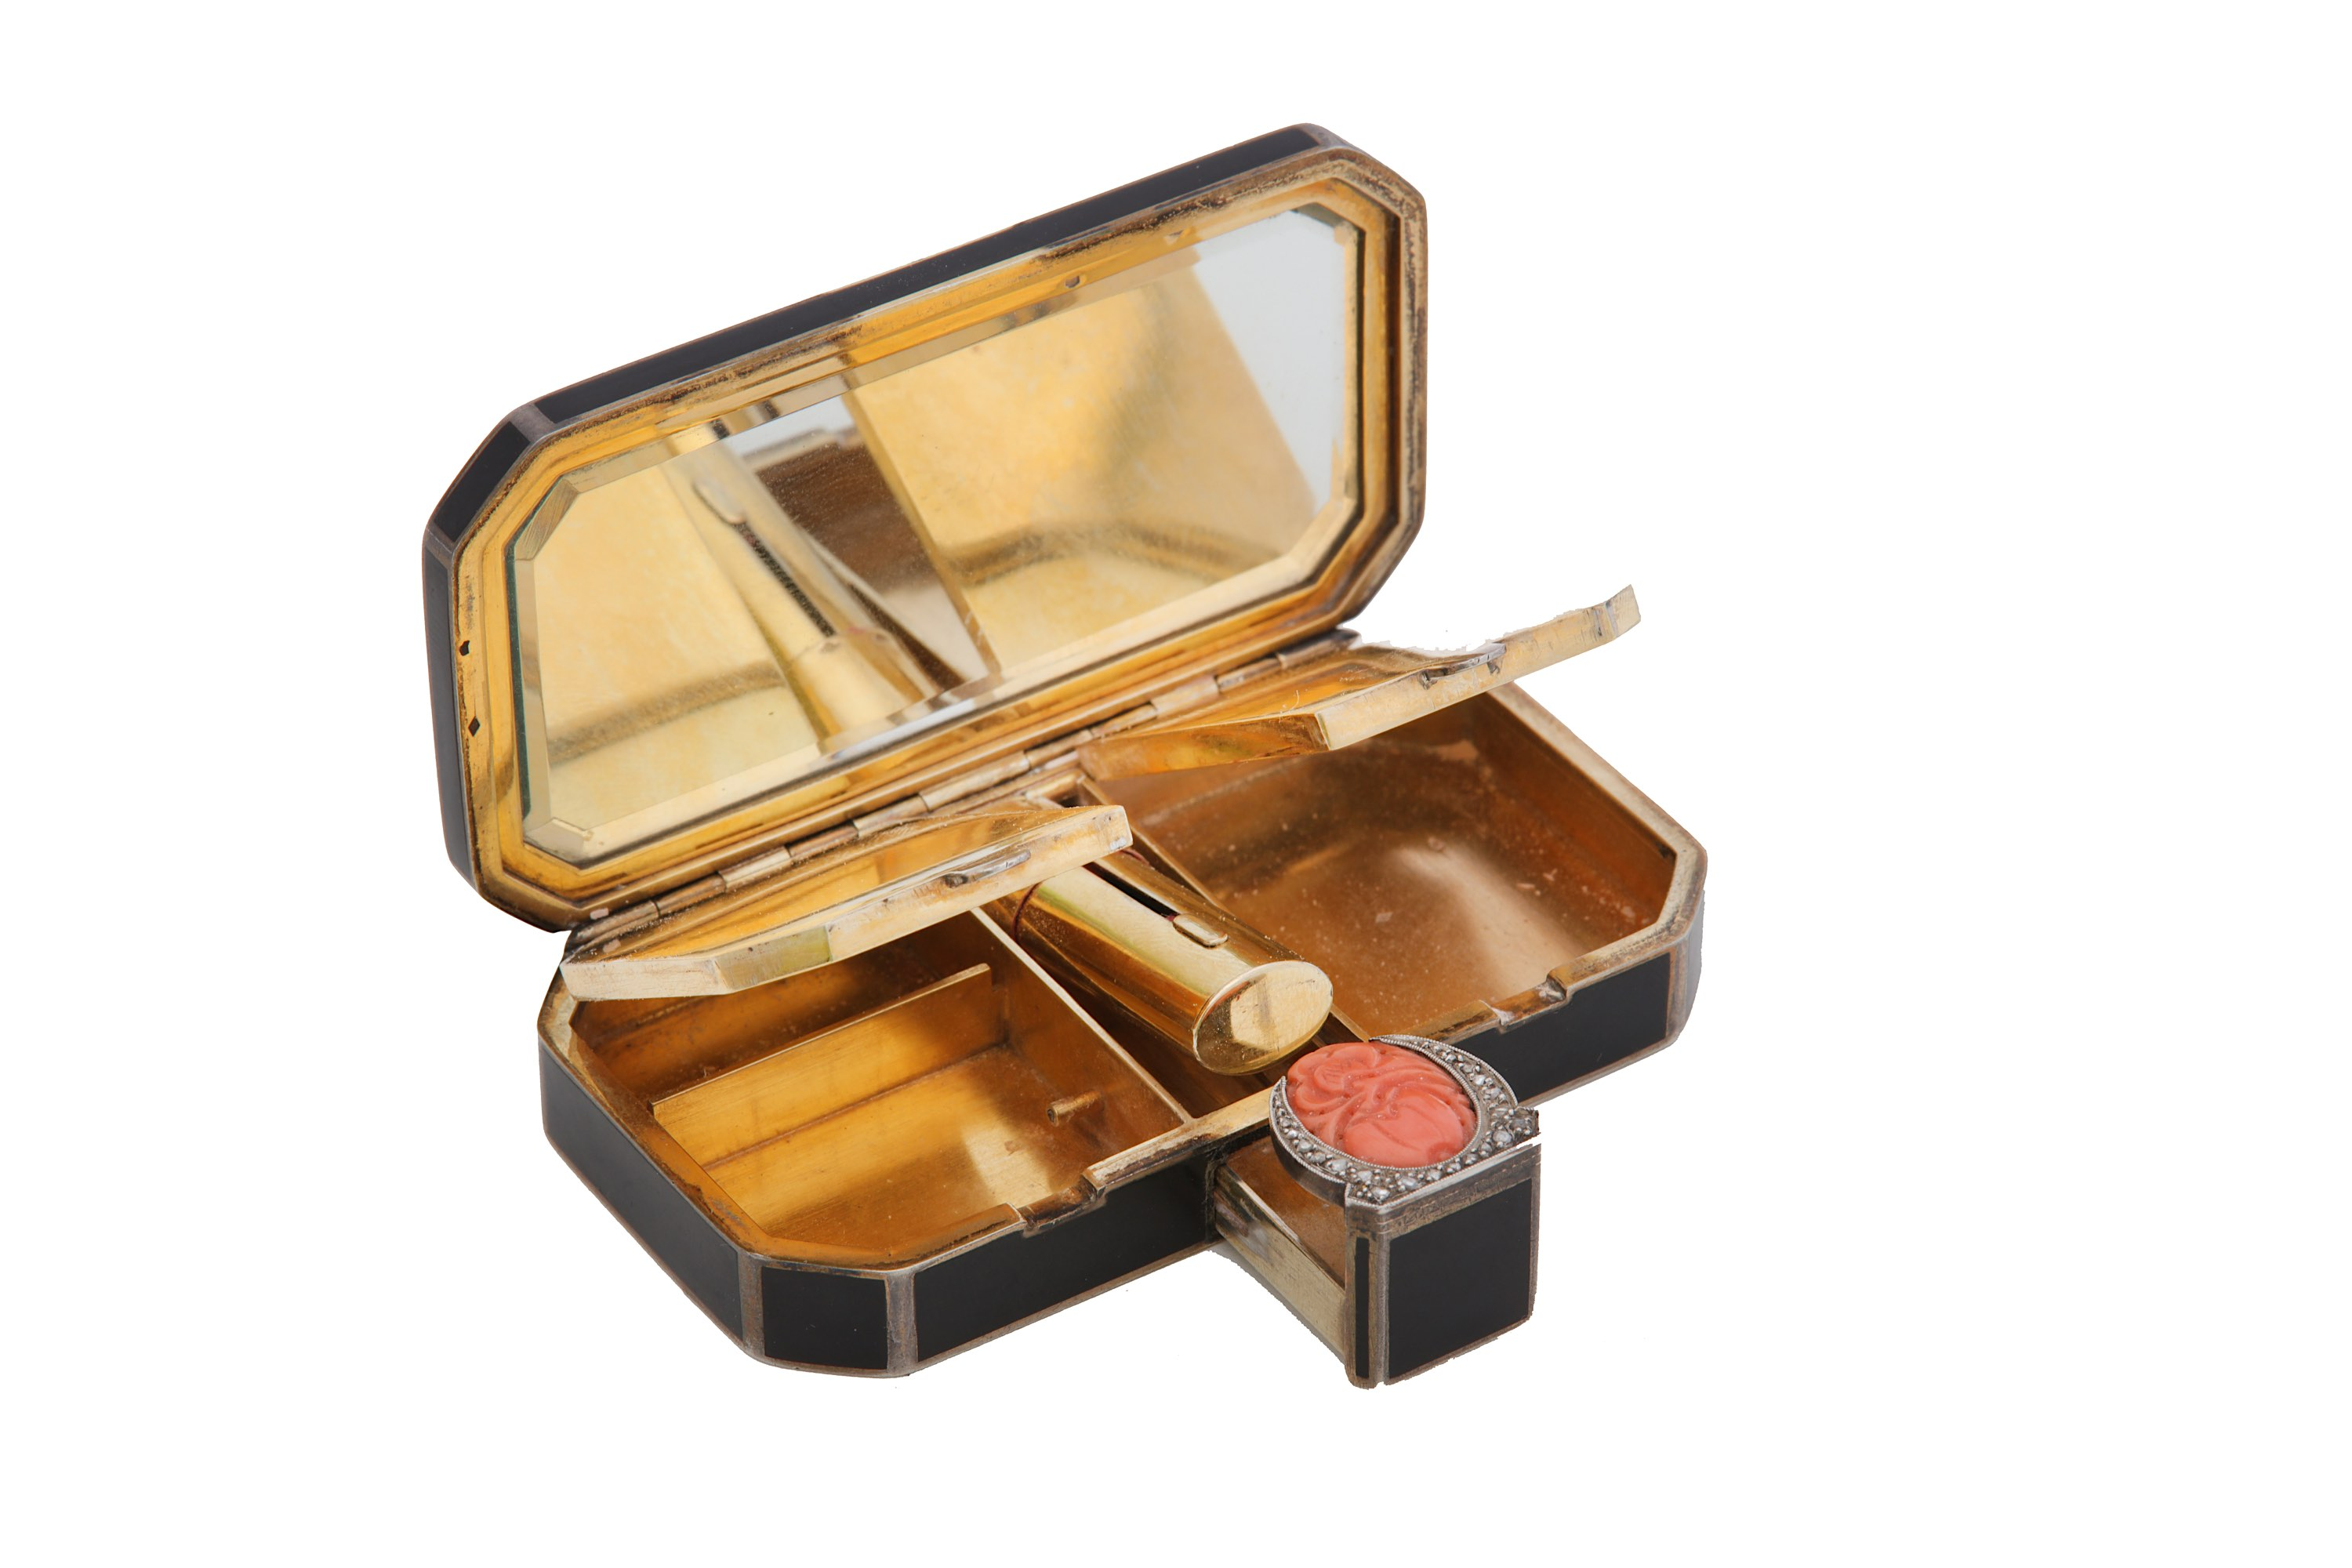 Lot 21 - A French Art Deco silver-gilt and black enamel compact, circa 1925 maker's mark AP with device betwe